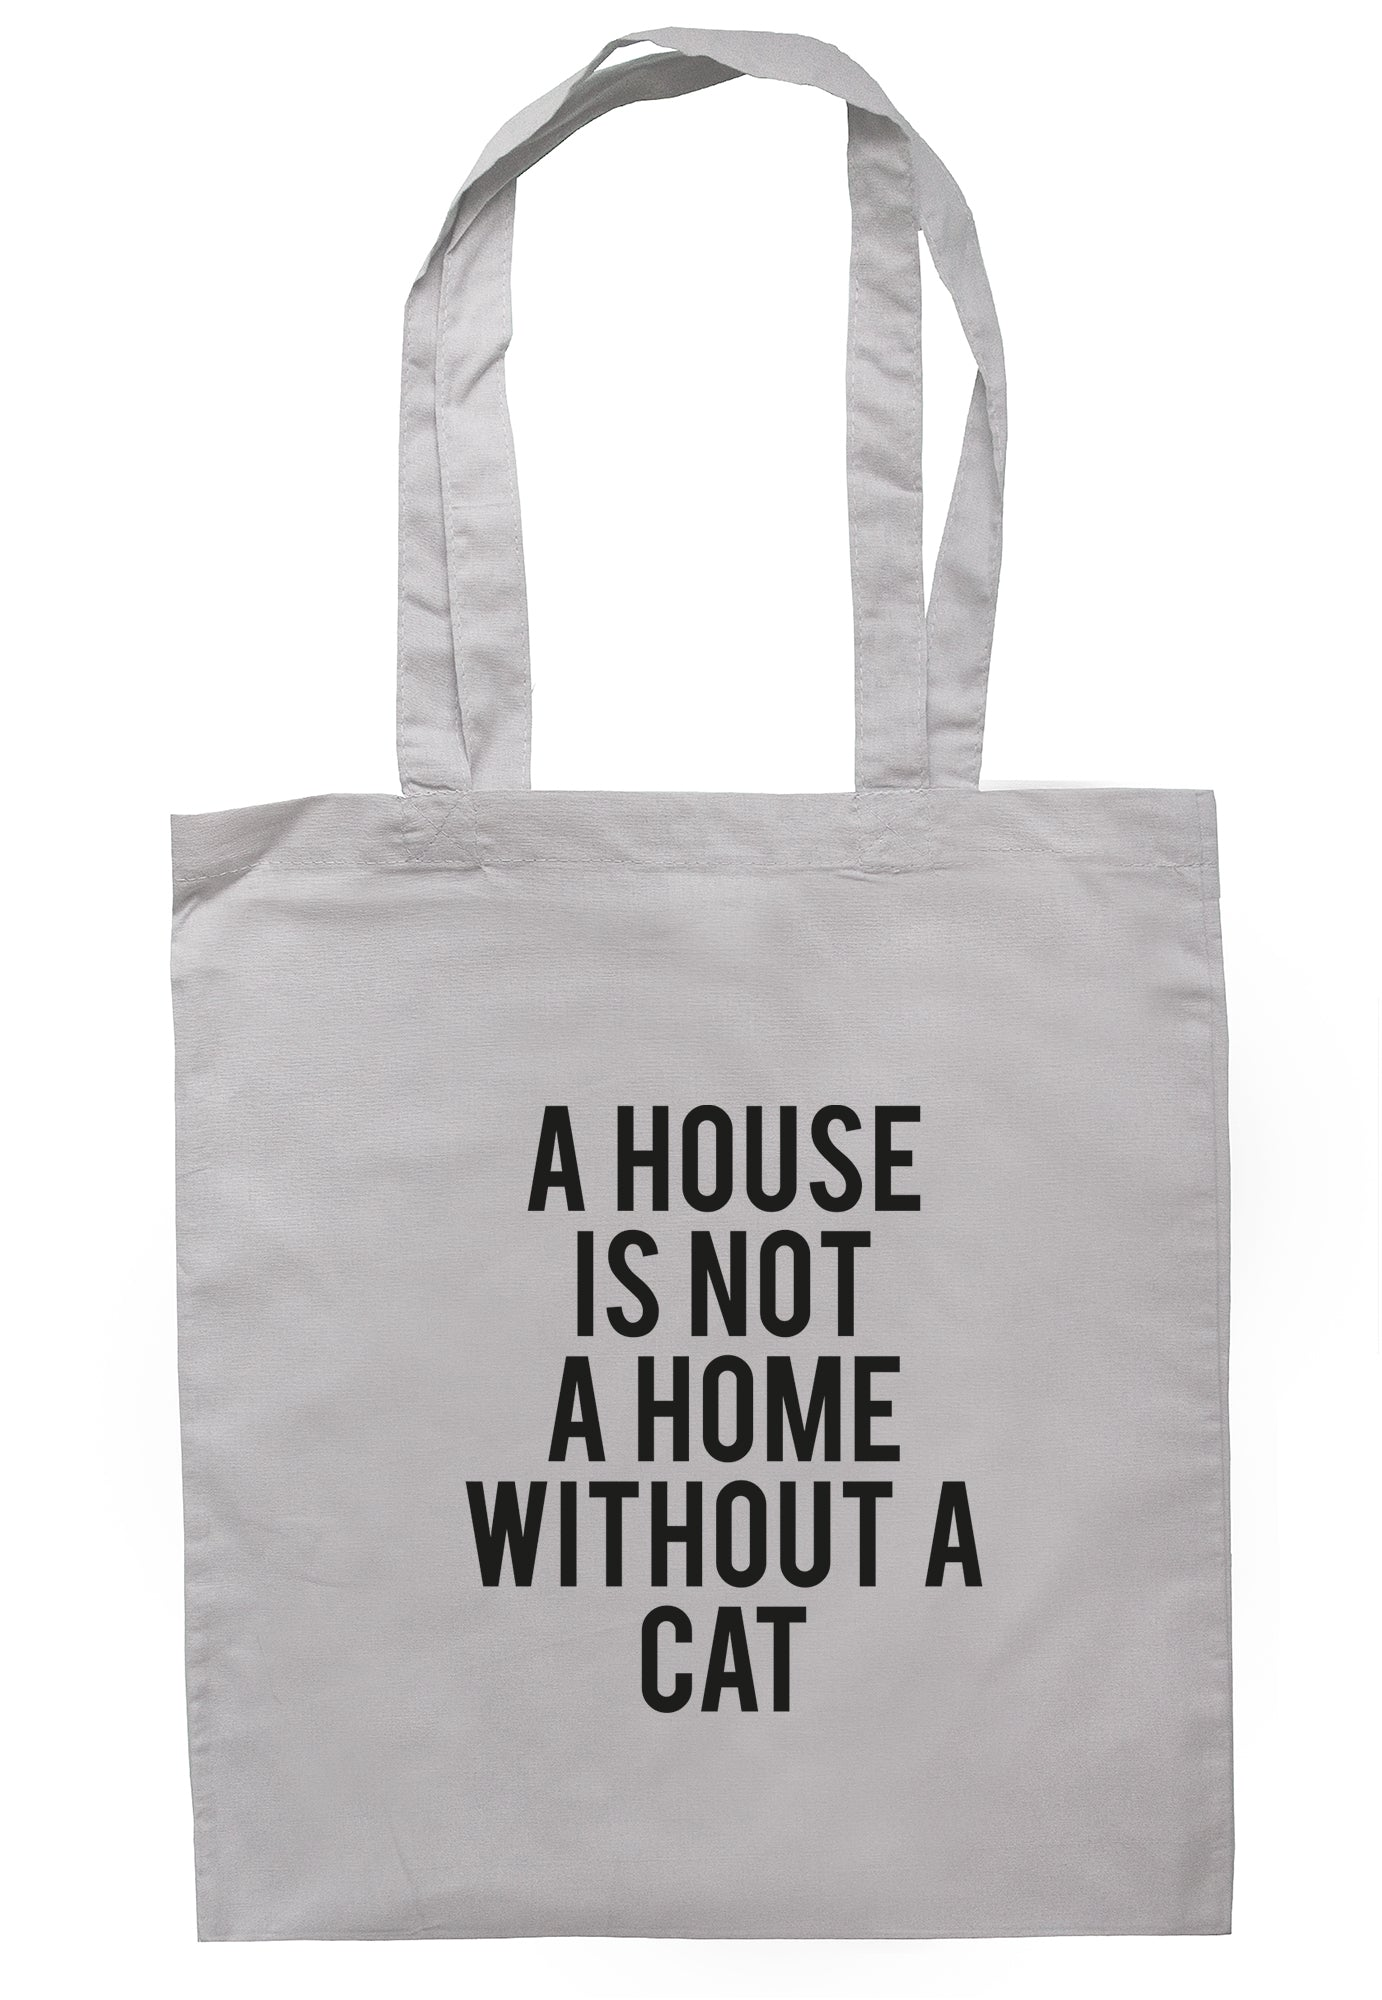 A House Is Not A Home Without A Cat Tote Bag TB1654 - Illustrated Identity Ltd.